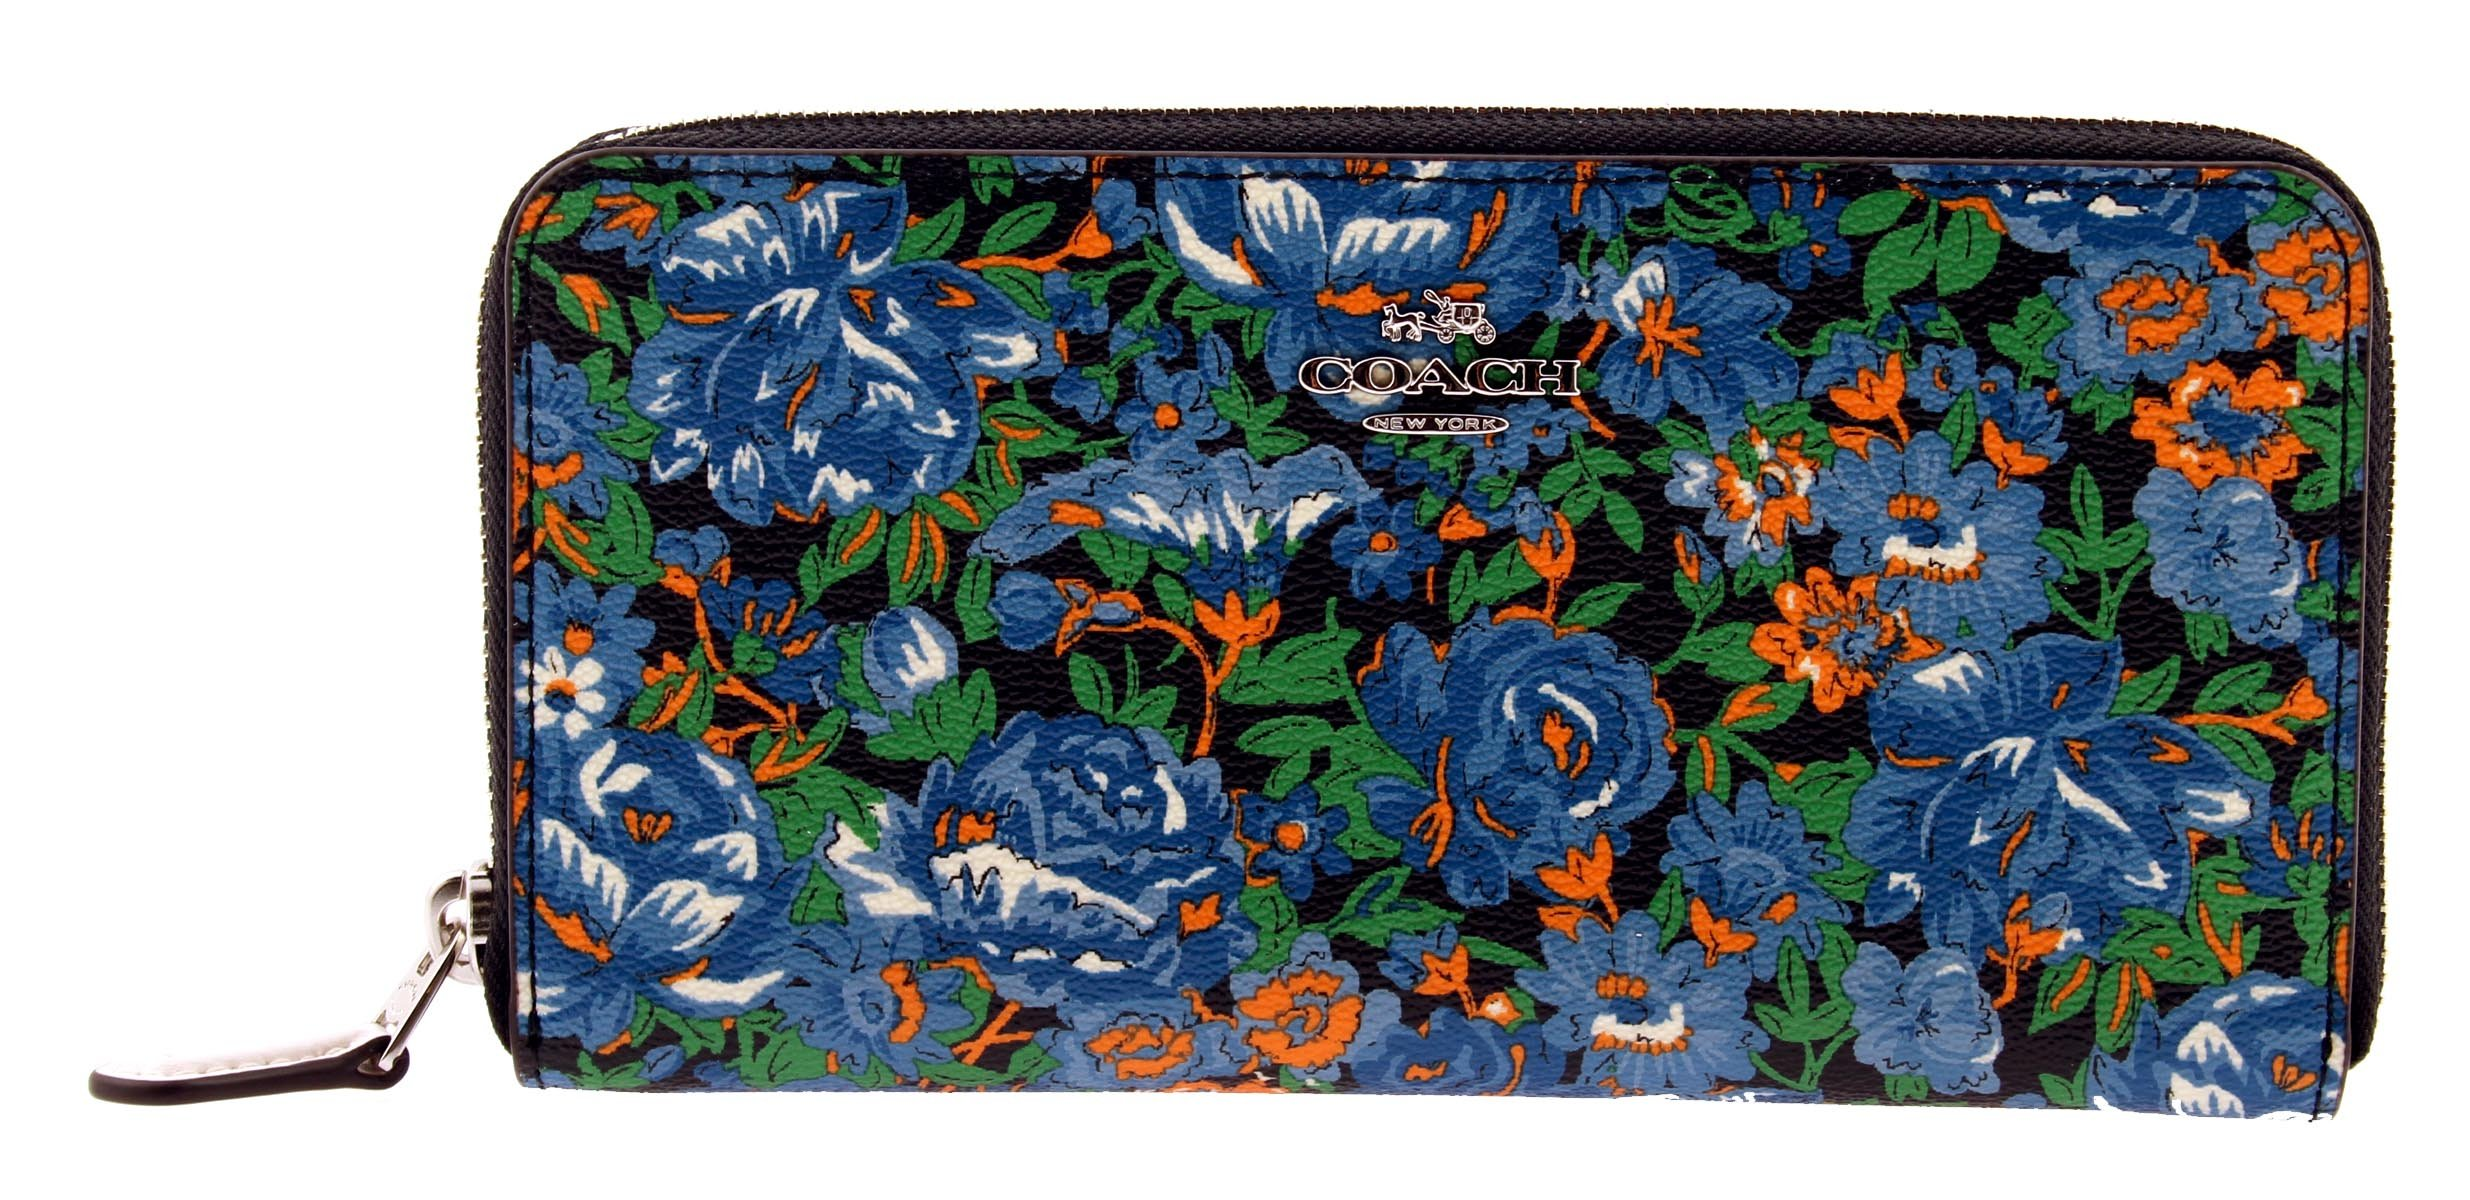 COACH Floral Printed Coated Canvas Zip Around Accordion Wallet (Blue Multi)